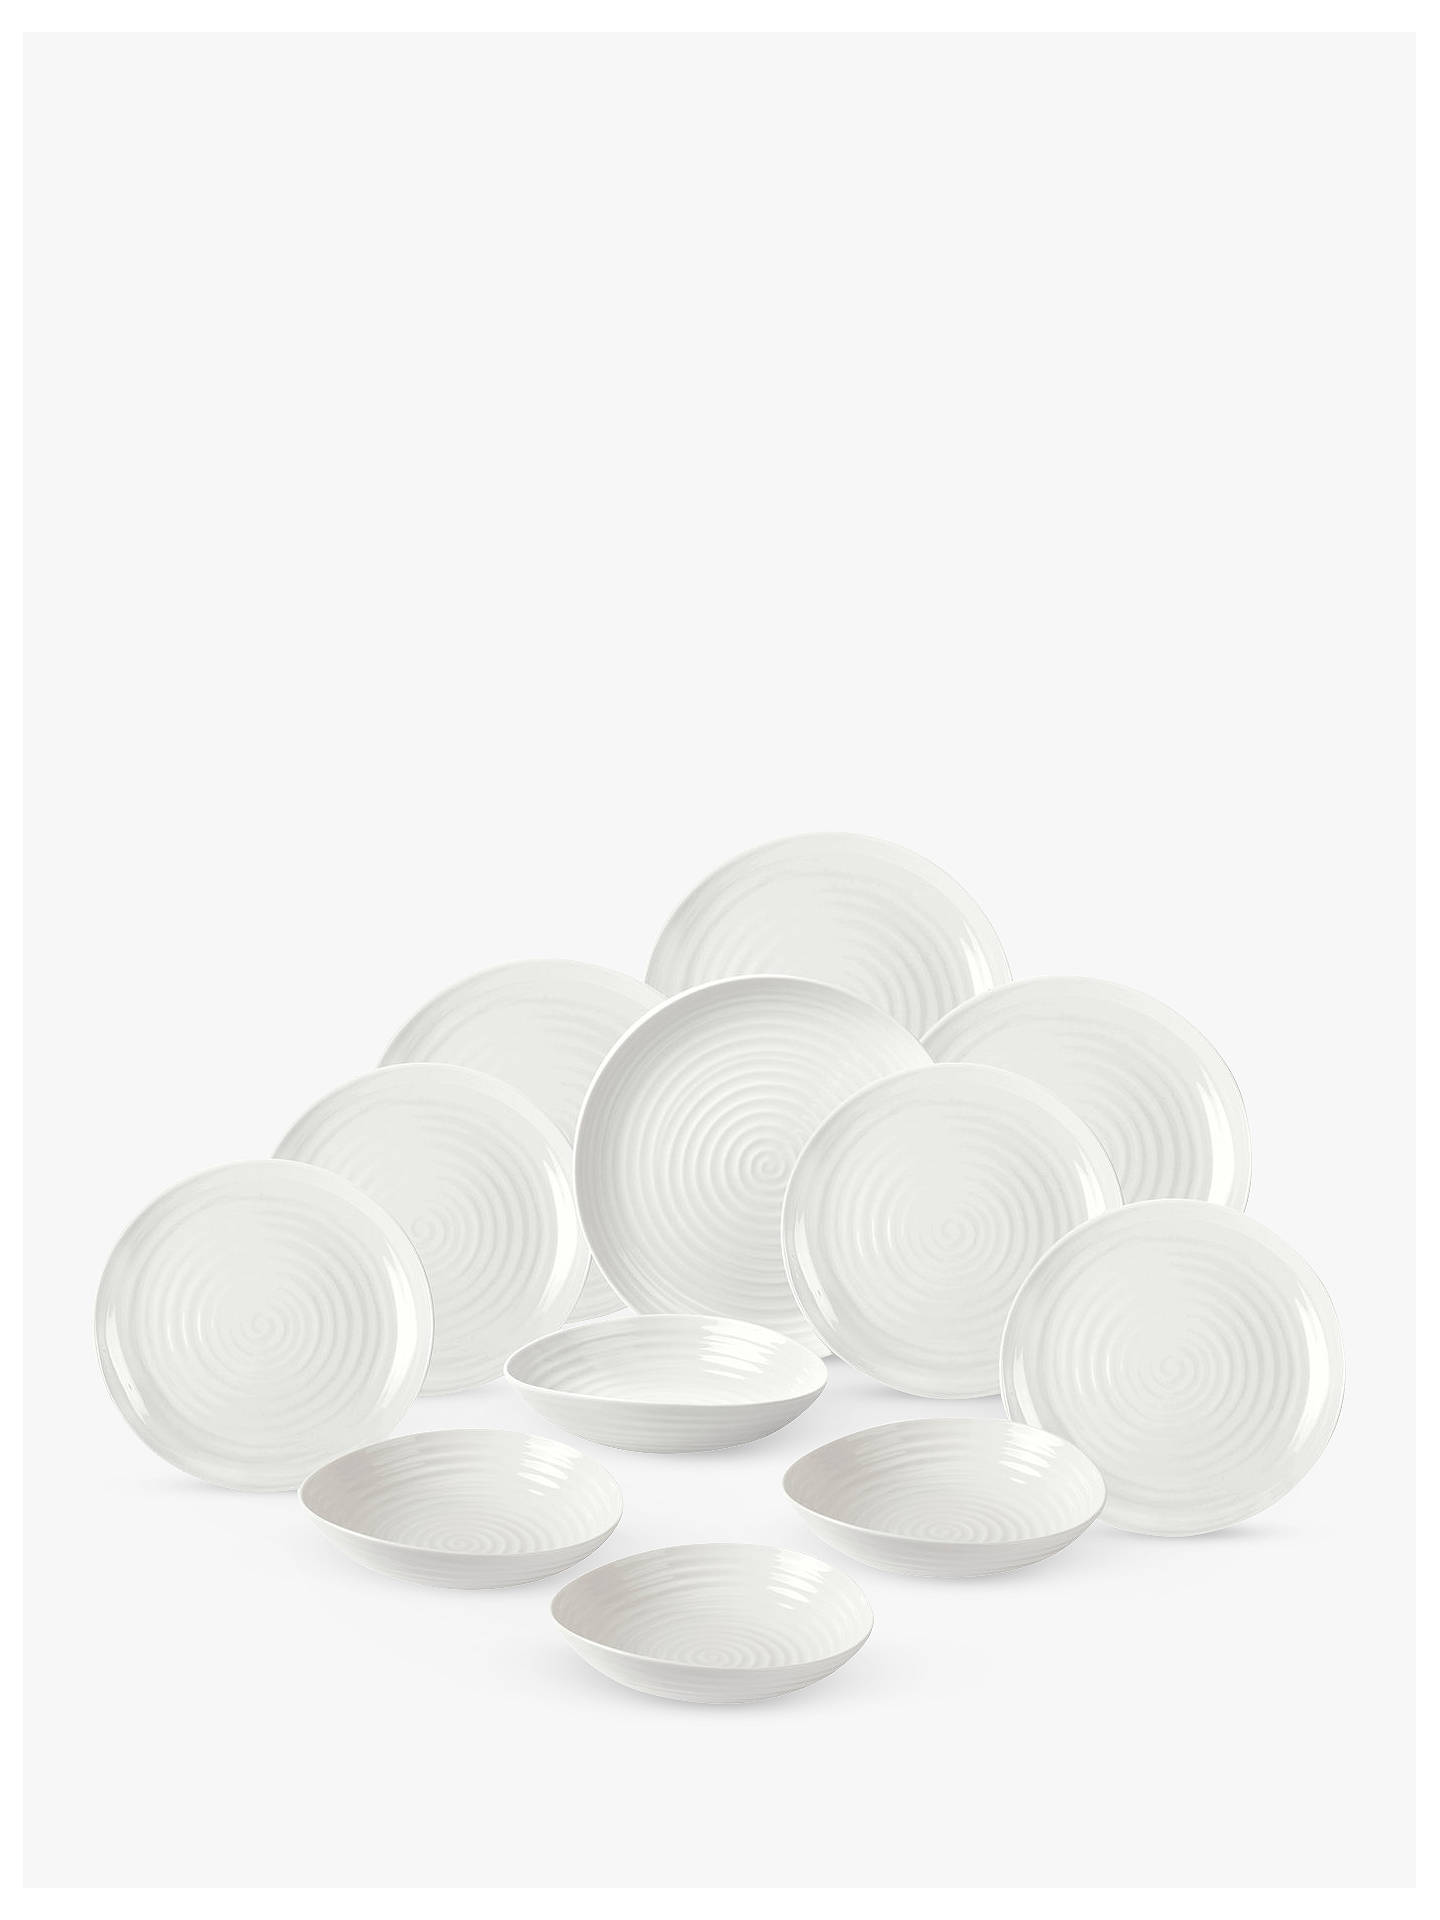 BuySophie Conran for Portmeirion Coupe Dinnerware Set, White, 12 Pieces Online at johnlewis.com